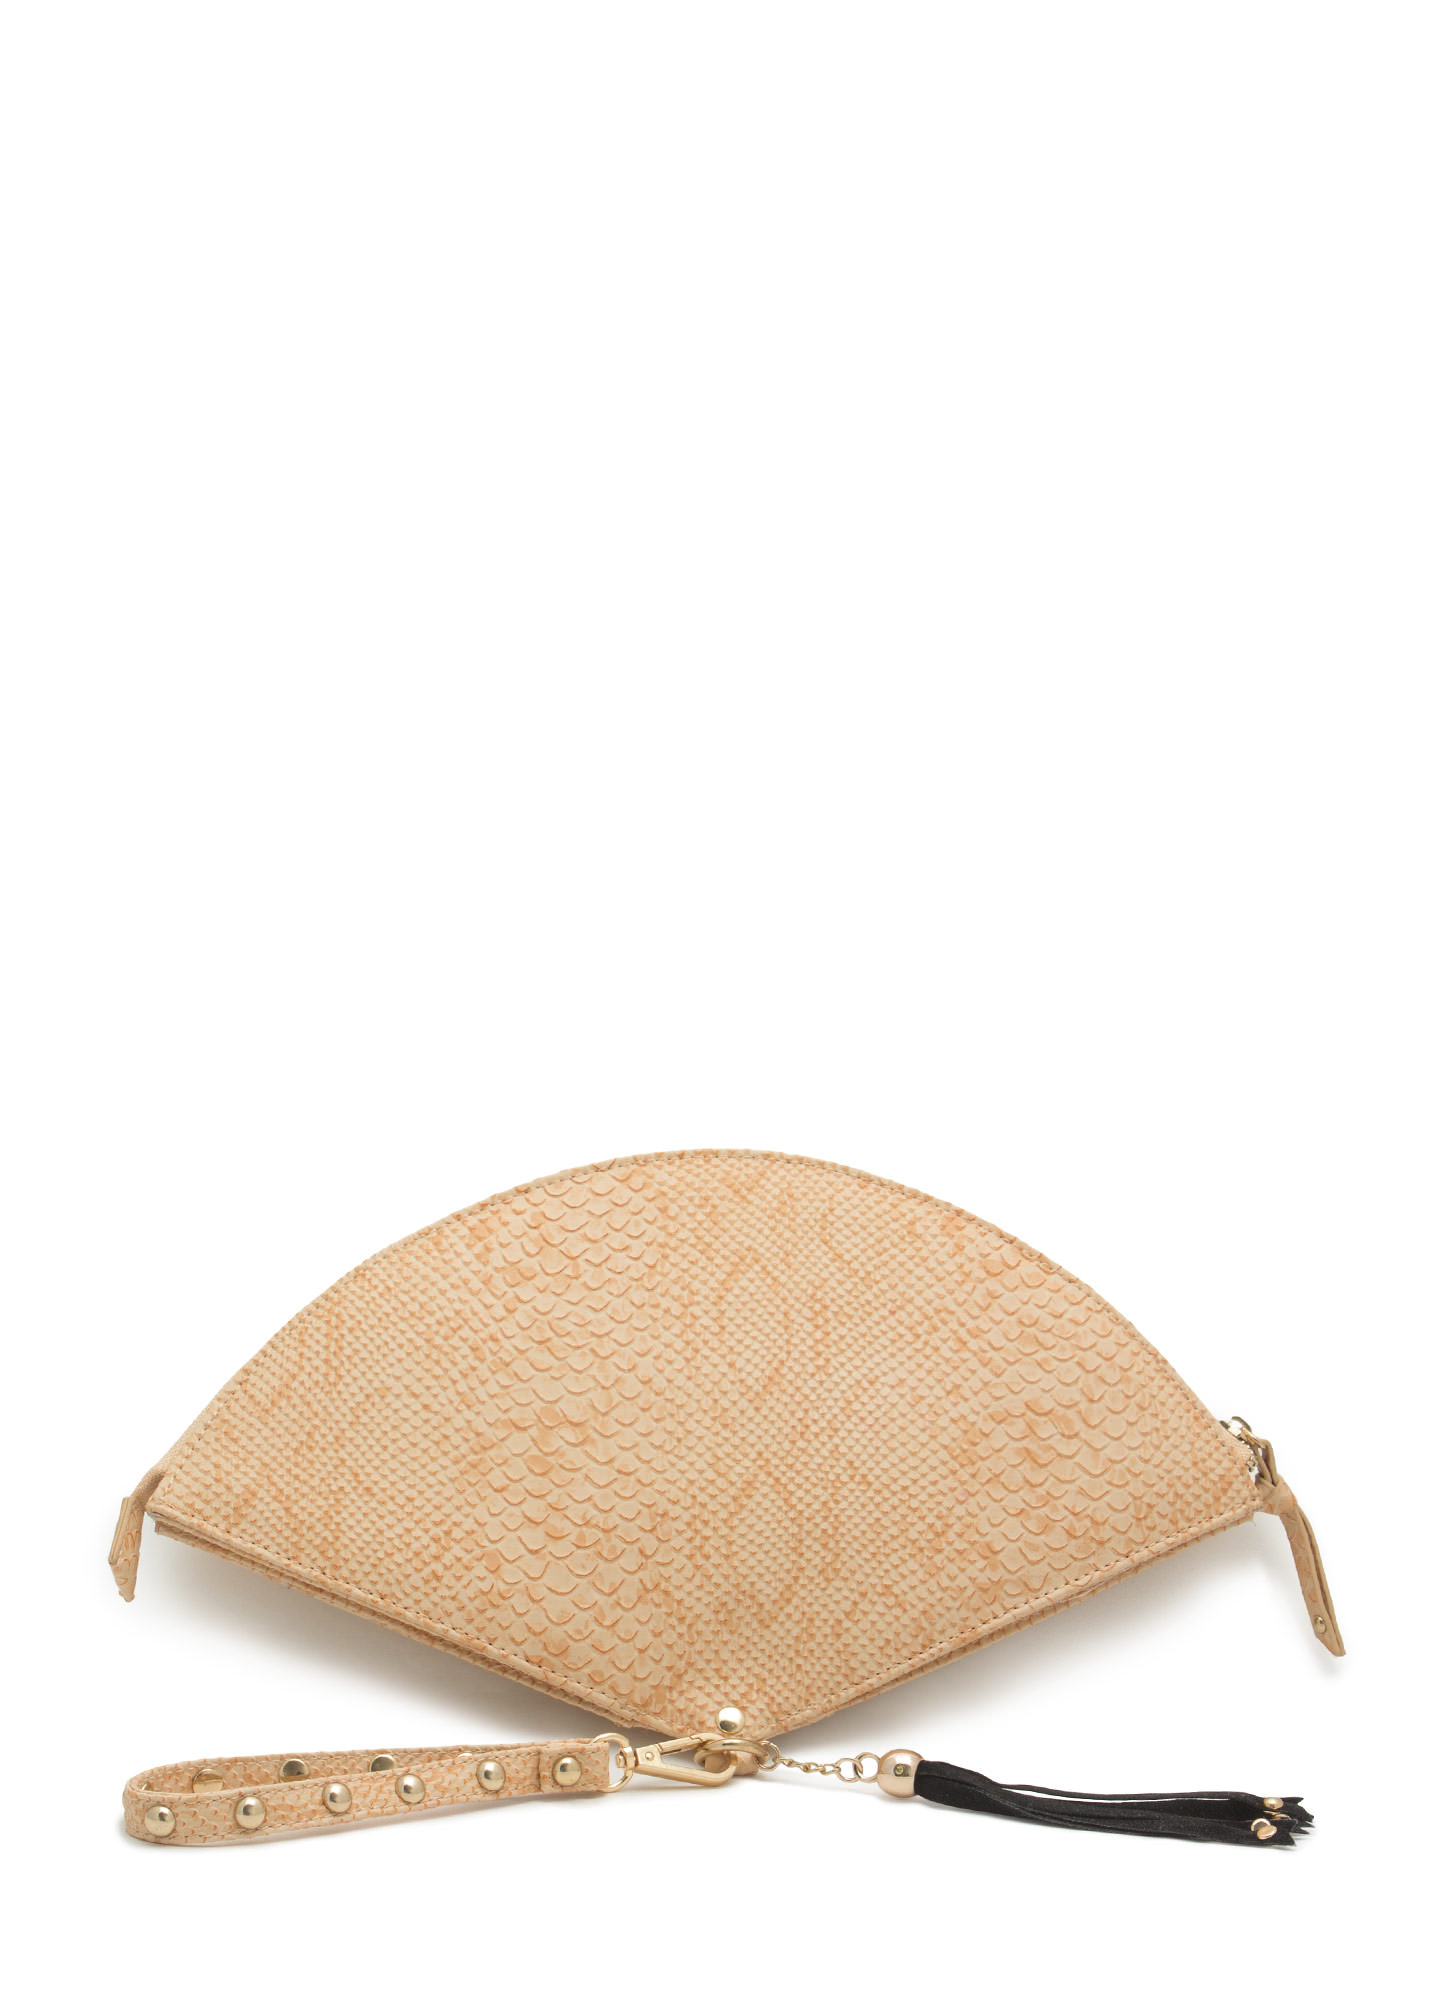 Tasseled Fan Studded Clutch BEIGE